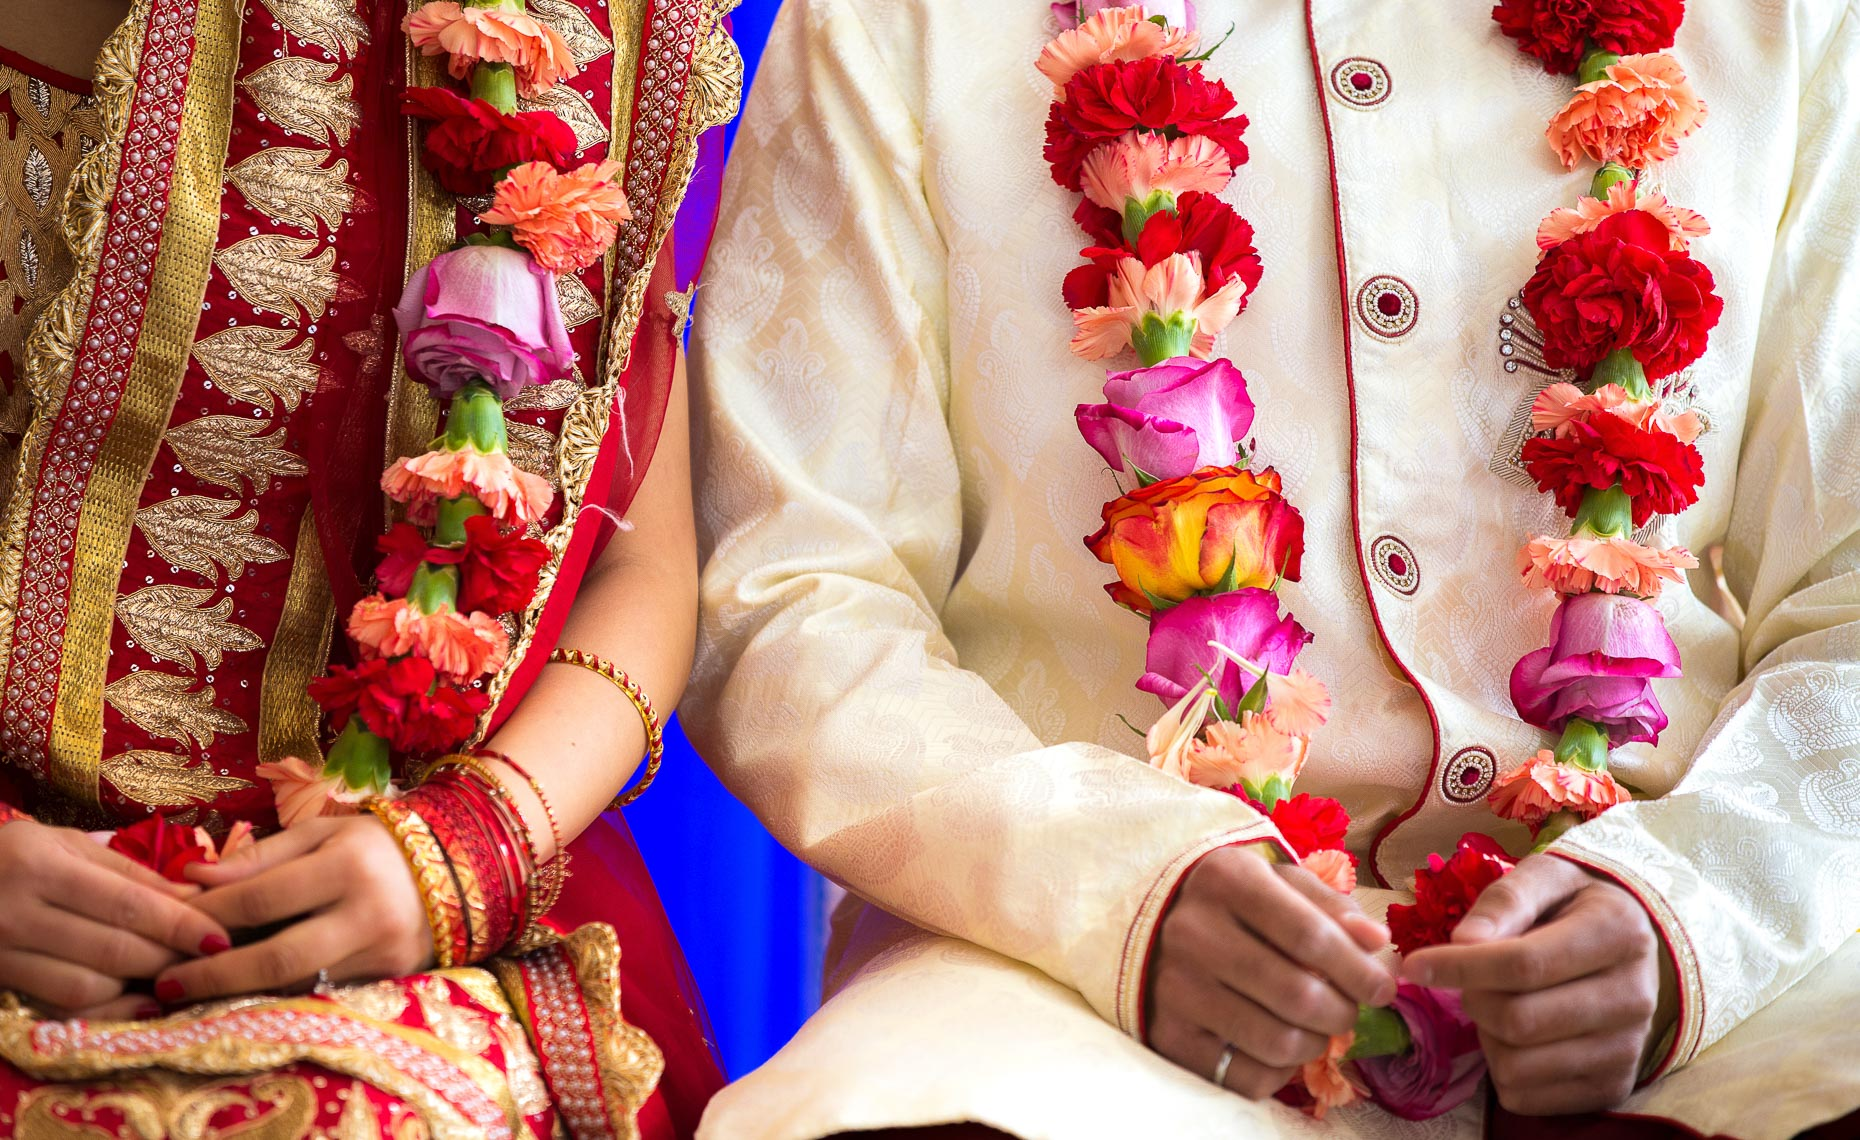 Hindu wedding ceremony in Whistler, BC during Kanyadaan